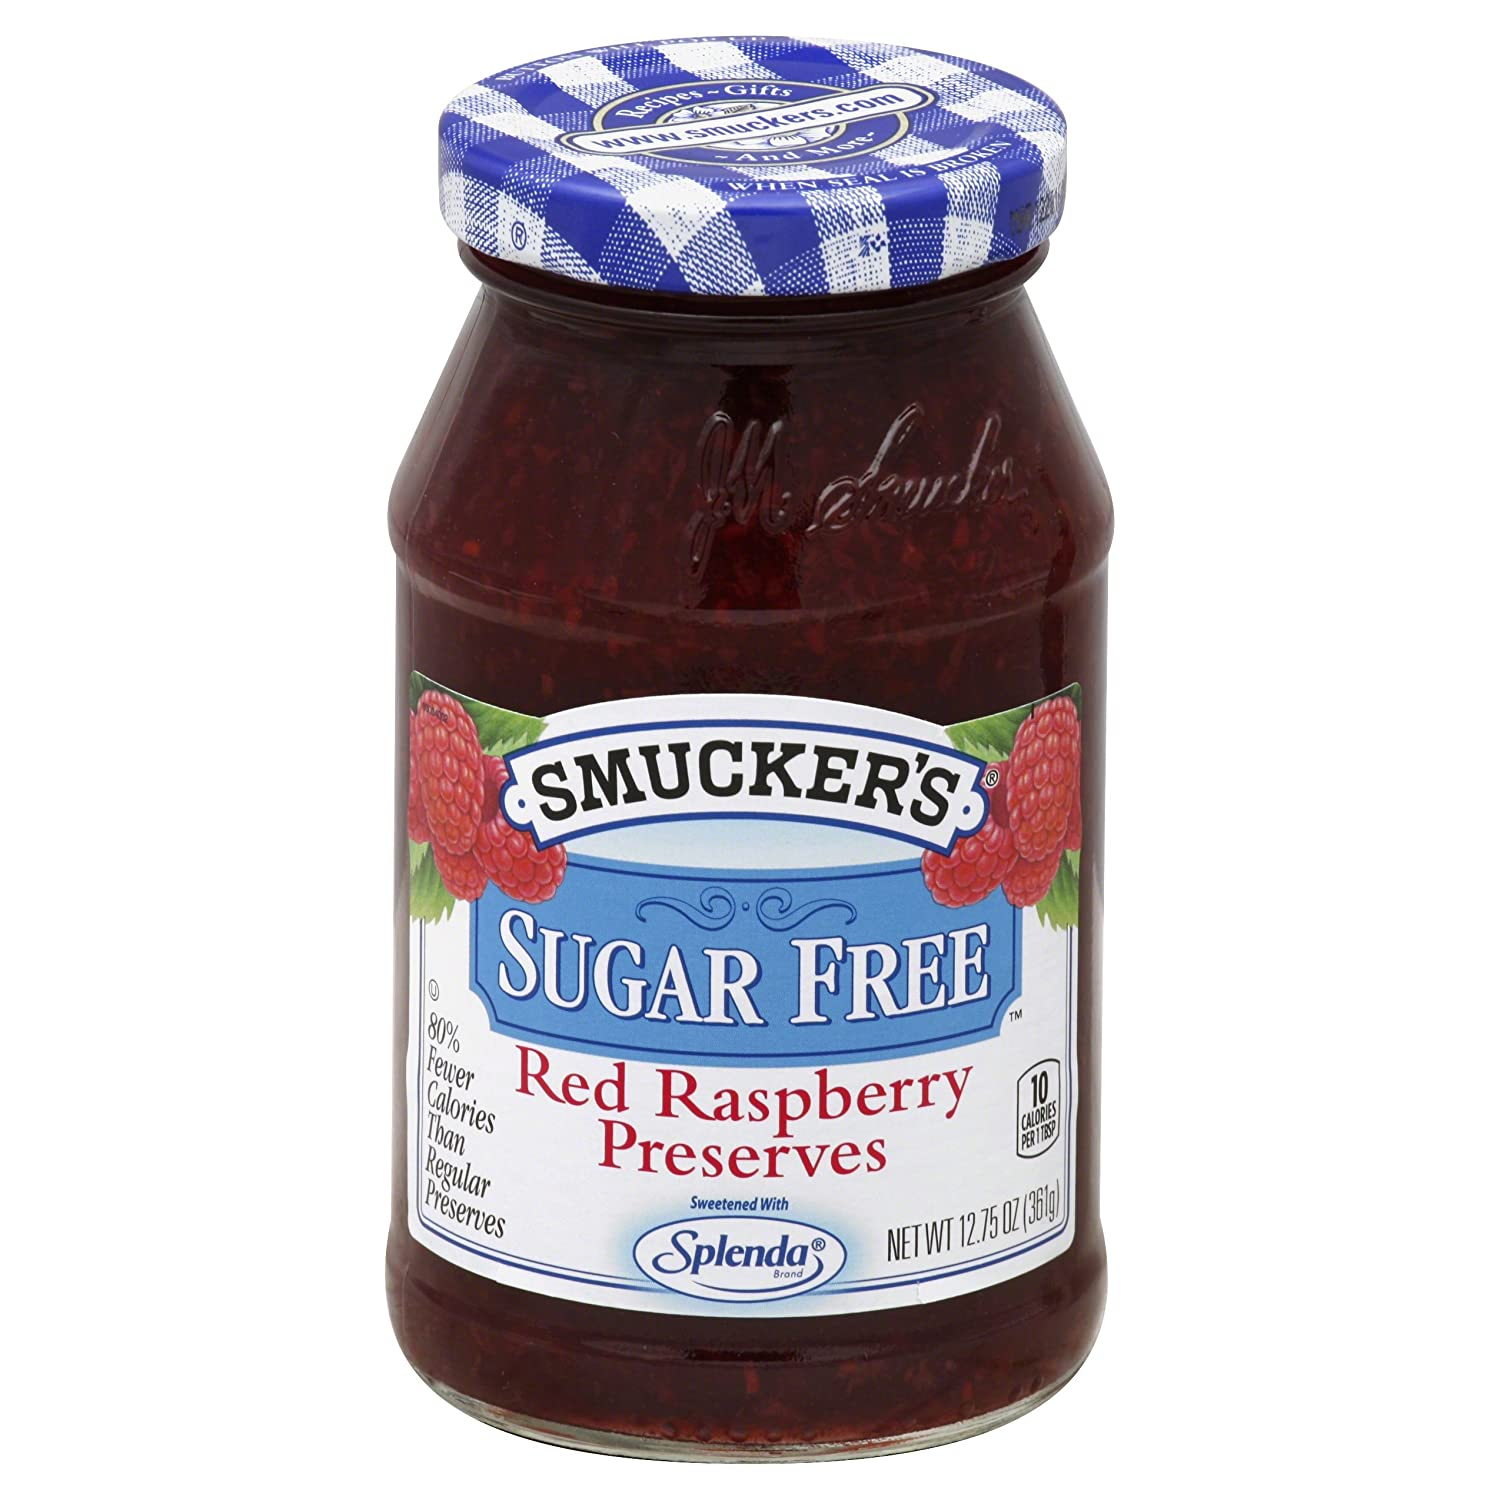 Smucker's Sugar Free Red Raspberry Preserves, 12.75 oz